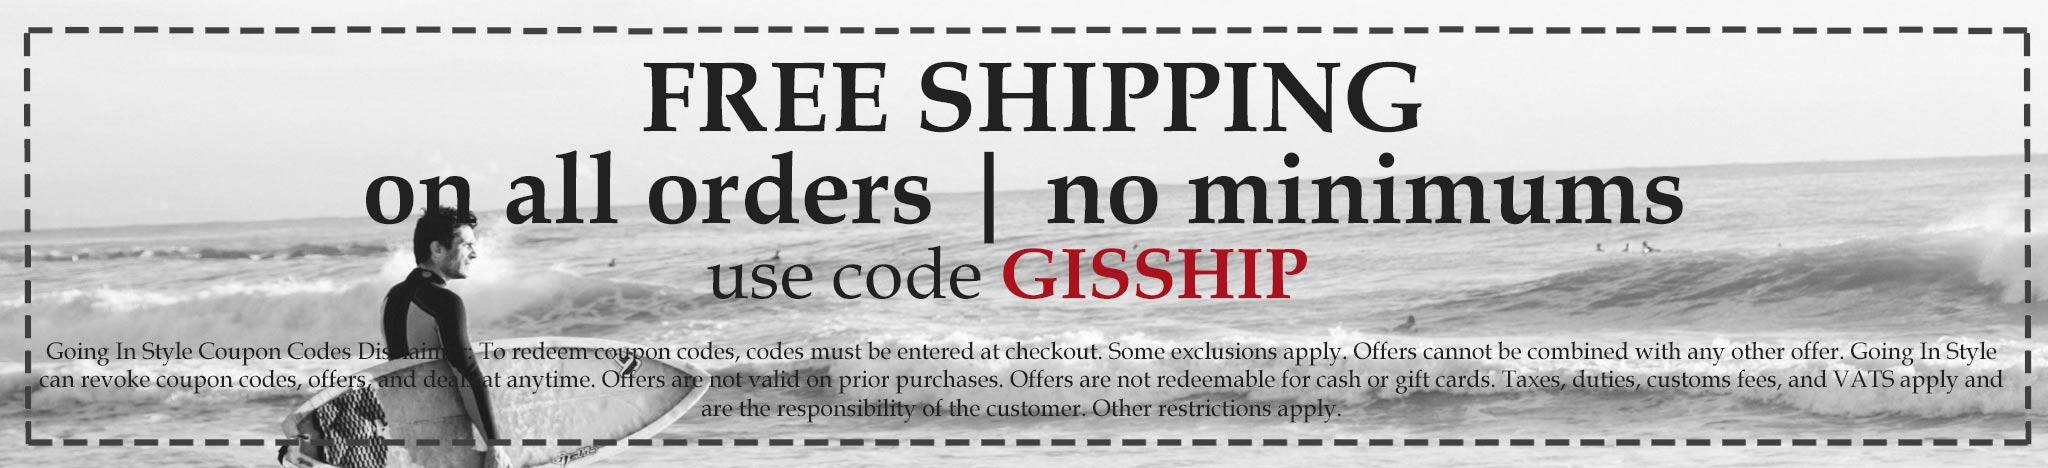 going in style free shipping coupon